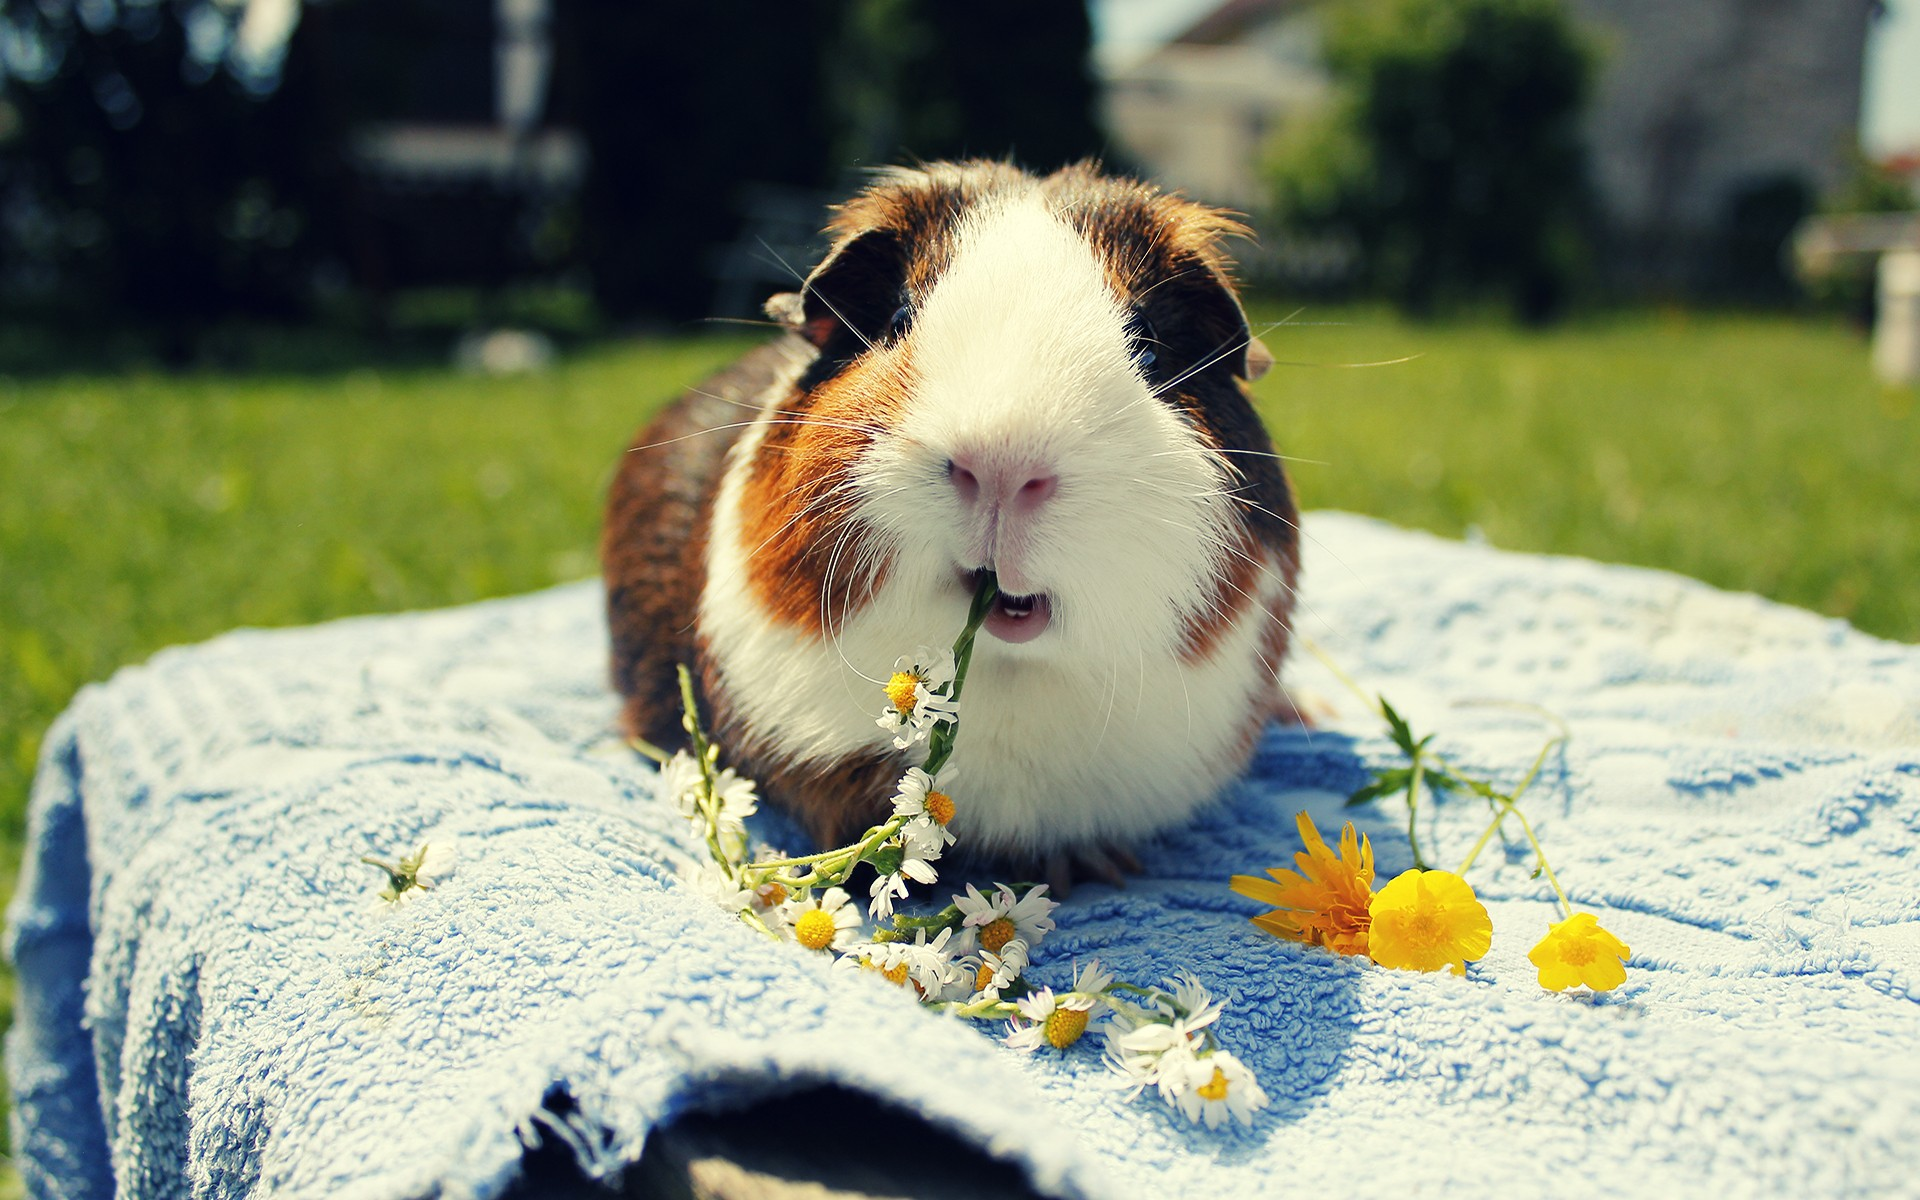 Cute eating guinea pig